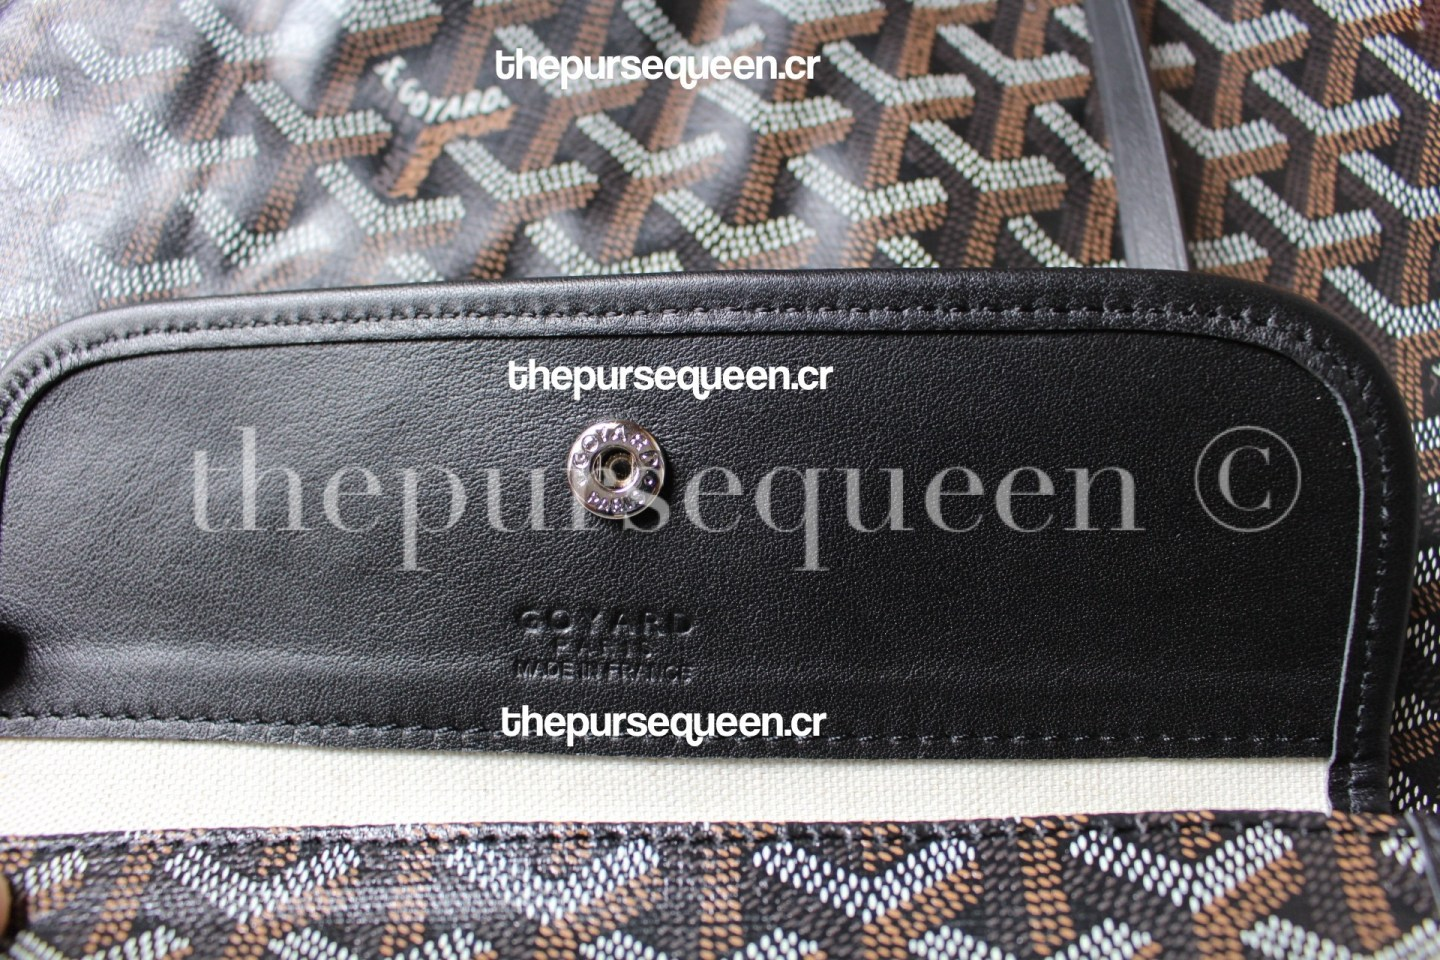 goyard-replica-saint-st-louis-tote-review-replicabags-fakevsreal-5